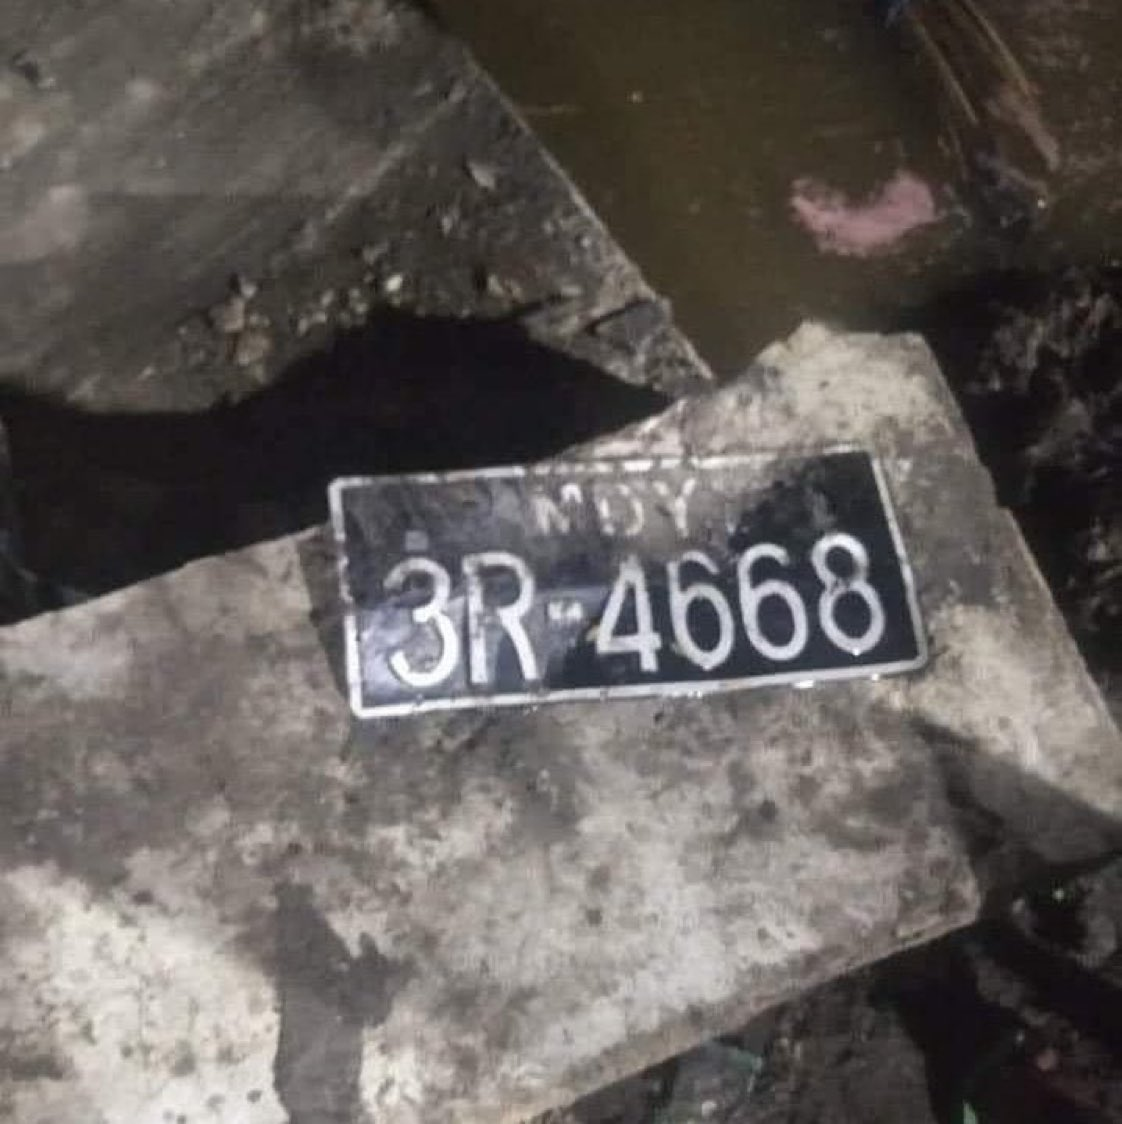 INHUMANE‼️📍#Mandalay   A bypassing car was SHOT by Junta Terrorists & the car plunged into drain last night. People on the car were forcibly ABDUCTED &the car also confiscated by Junta Terrorists. Only car number plate left in the morning.   #Apr14Coup @RapporteurUn @DrSasa22222 https://t.co/hskZ916N3E